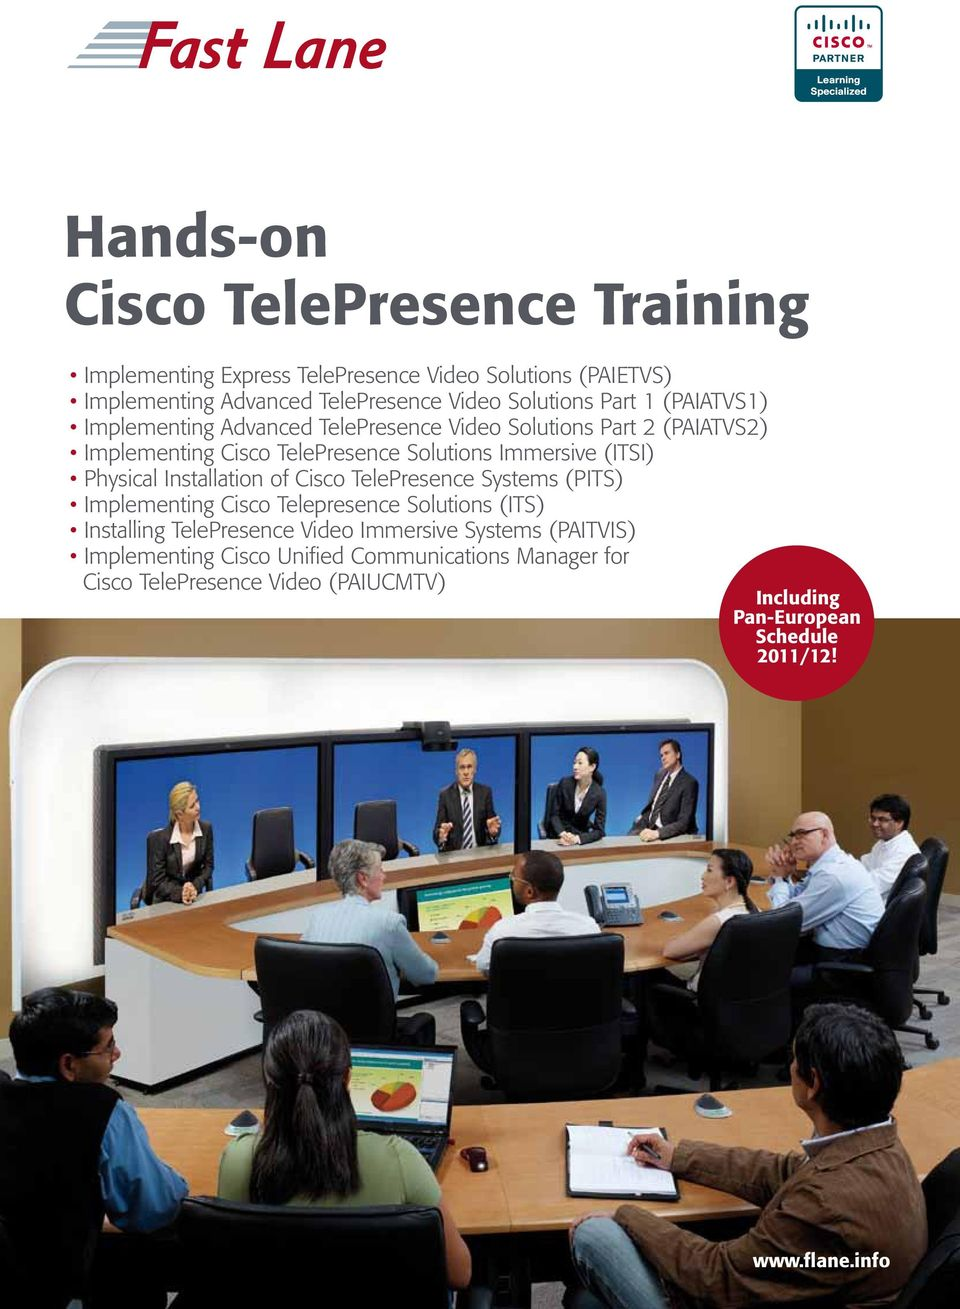 Physical Installation of Cisco TelePresence Systems (PITS) Implementing Cisco Telepresence Solutions (ITS) Installing TelePresence Video Immersive